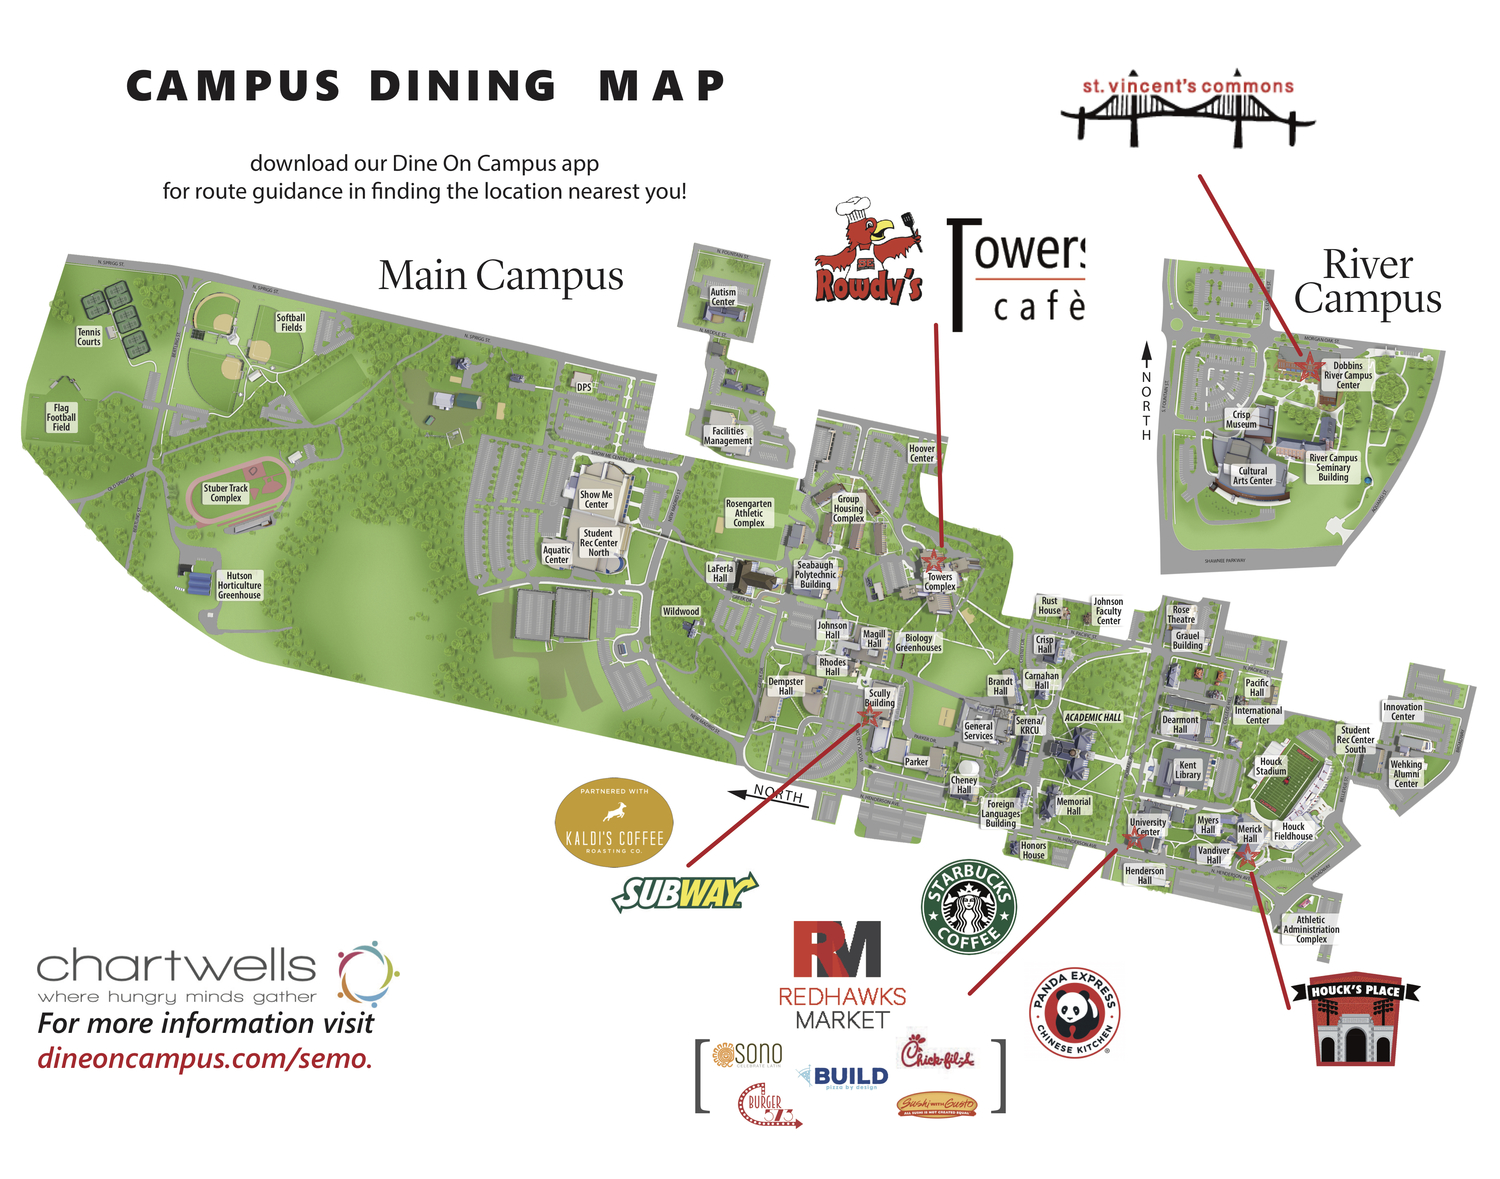 southeast missouri state university campus map Dine On Campus At Southeast Missouri State University Dining southeast missouri state university campus map